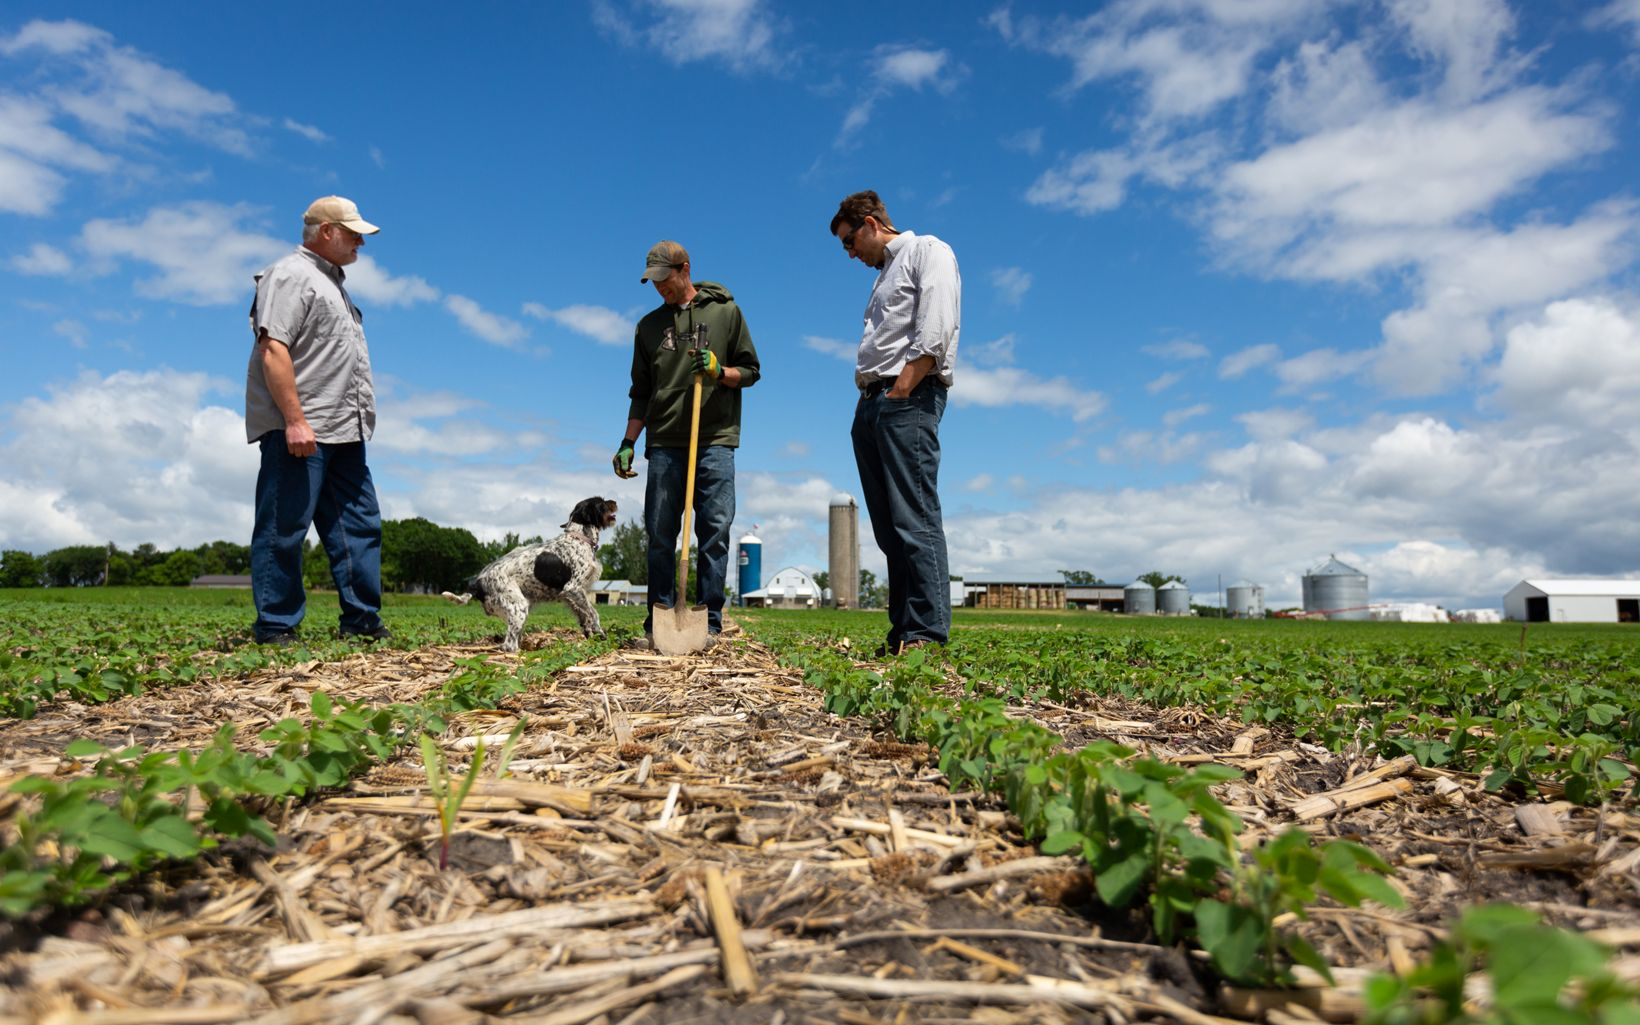 Three people and a dog standing in a no-till farm field.